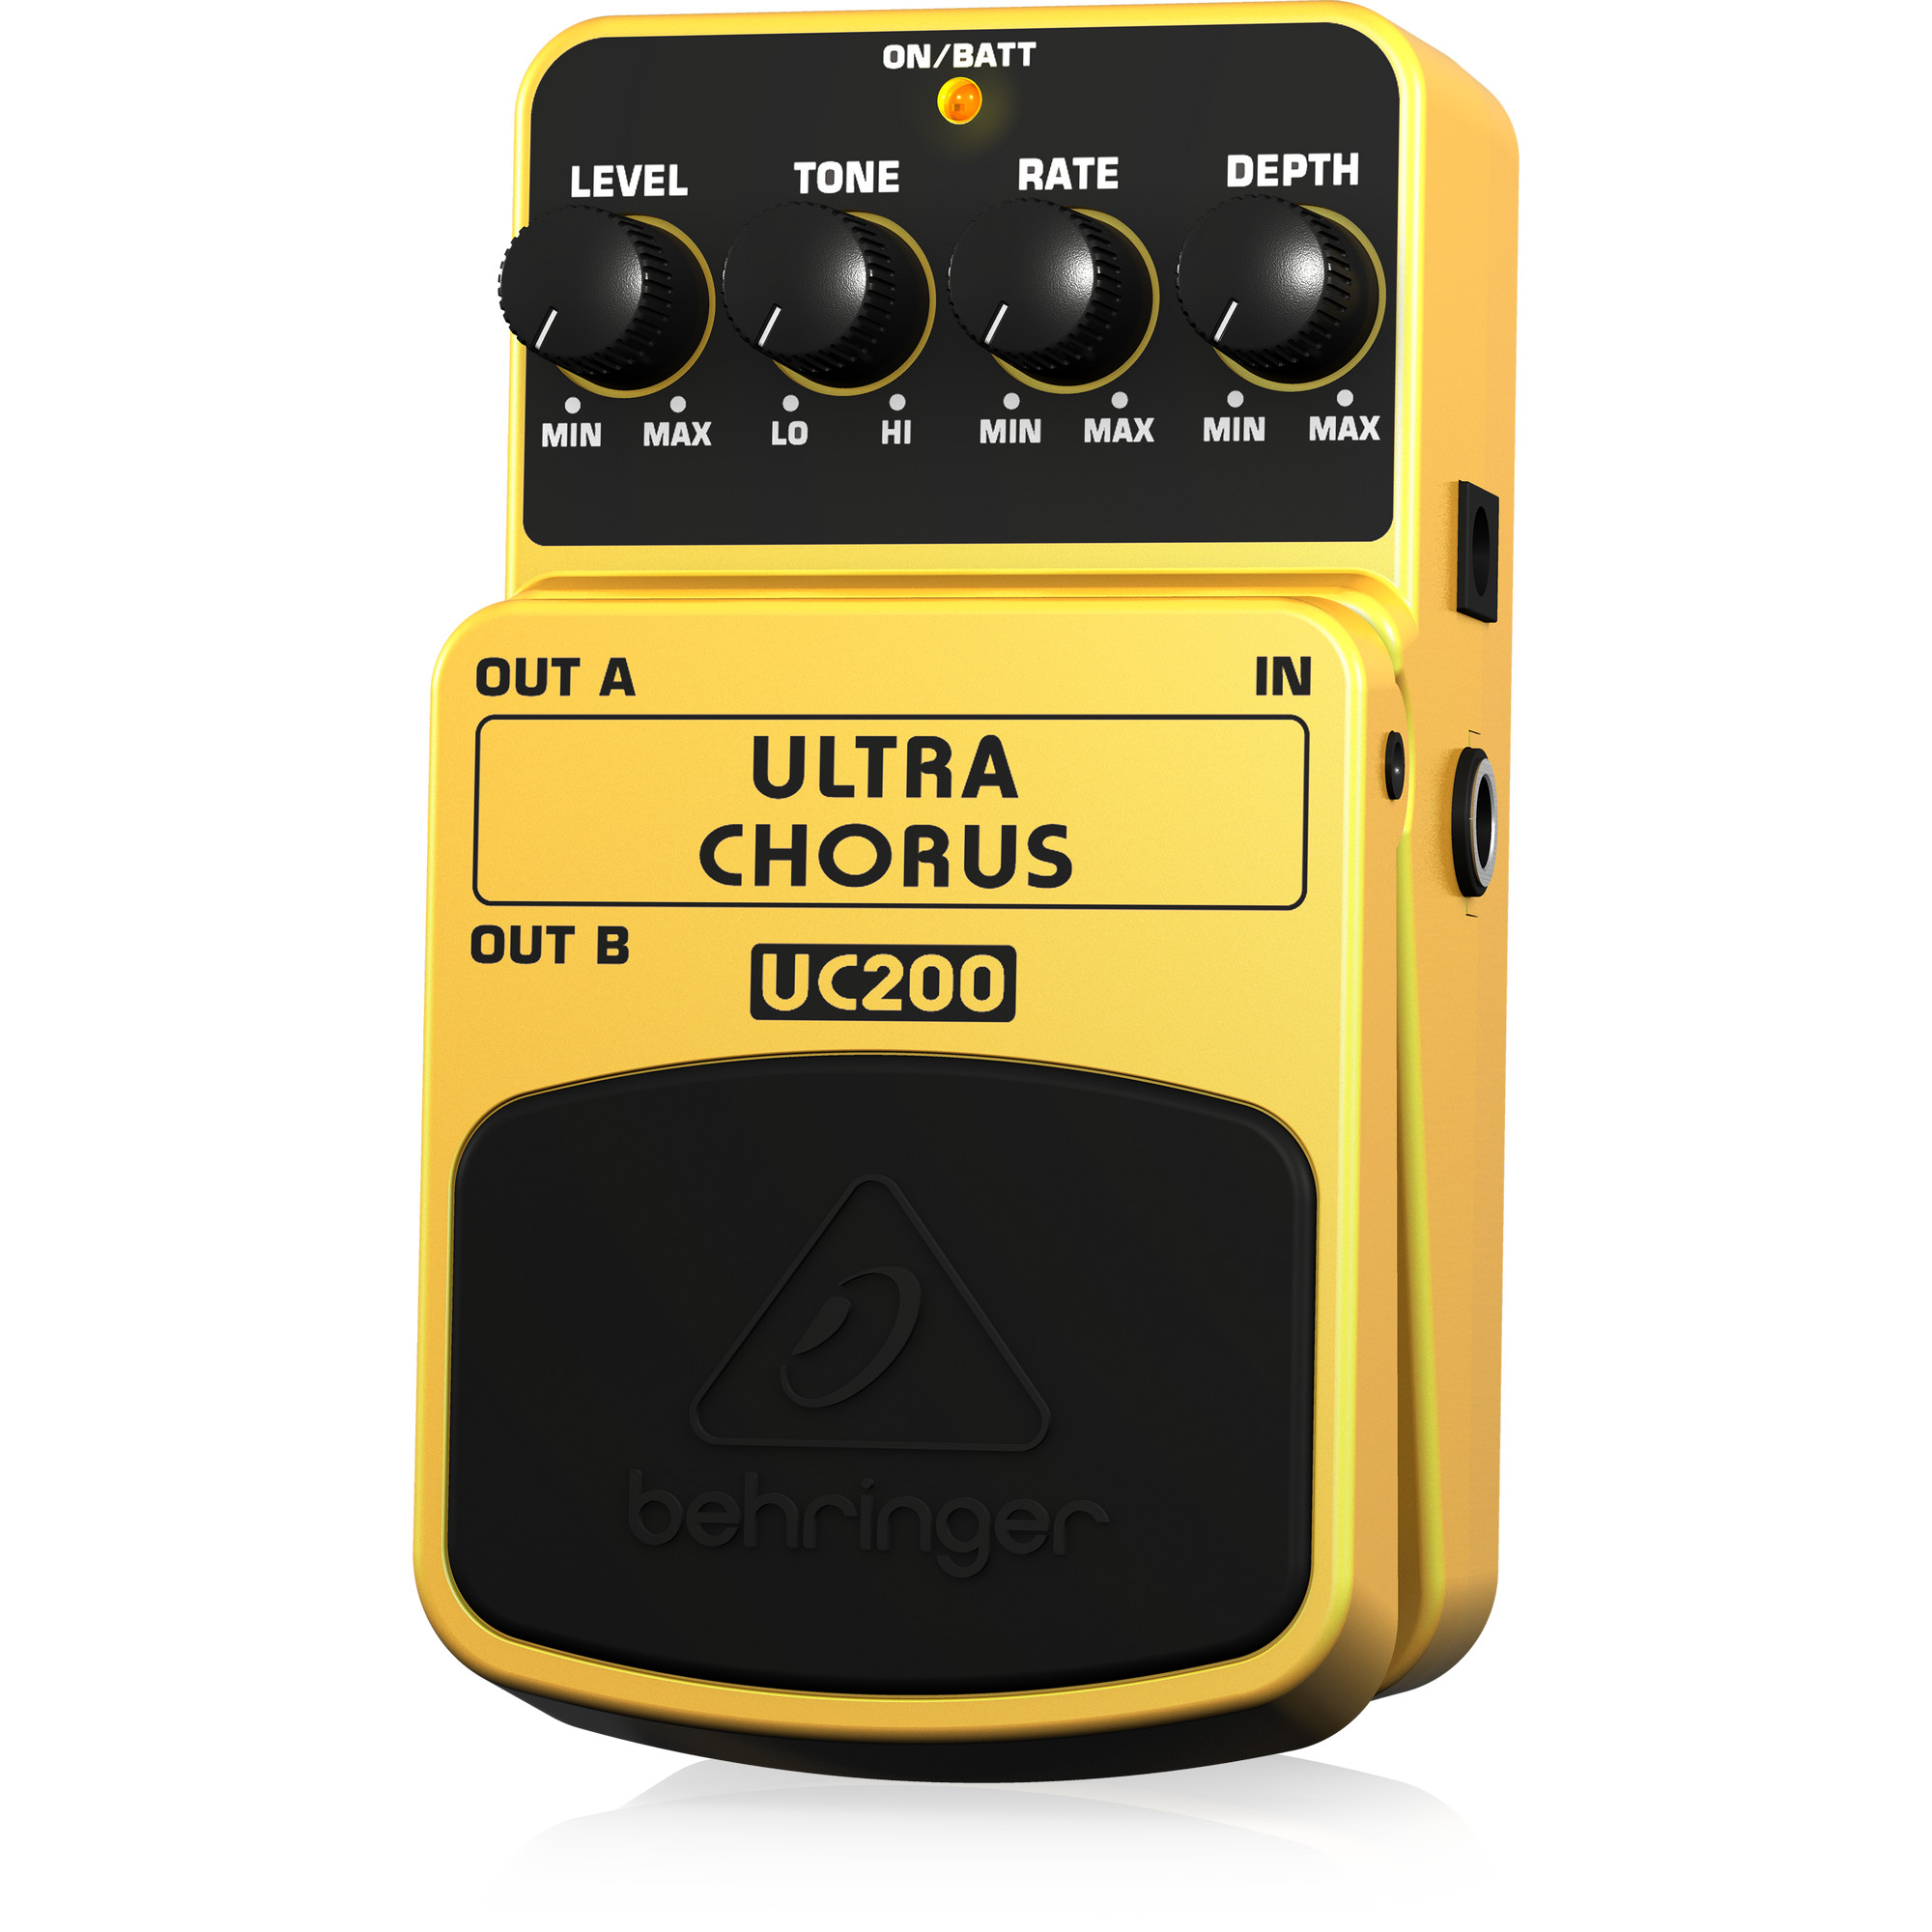 Guitar Stompboxes Behringer UC200 -Ultimate Stereo Chorus Effects Pedal- Hàng chính hãng